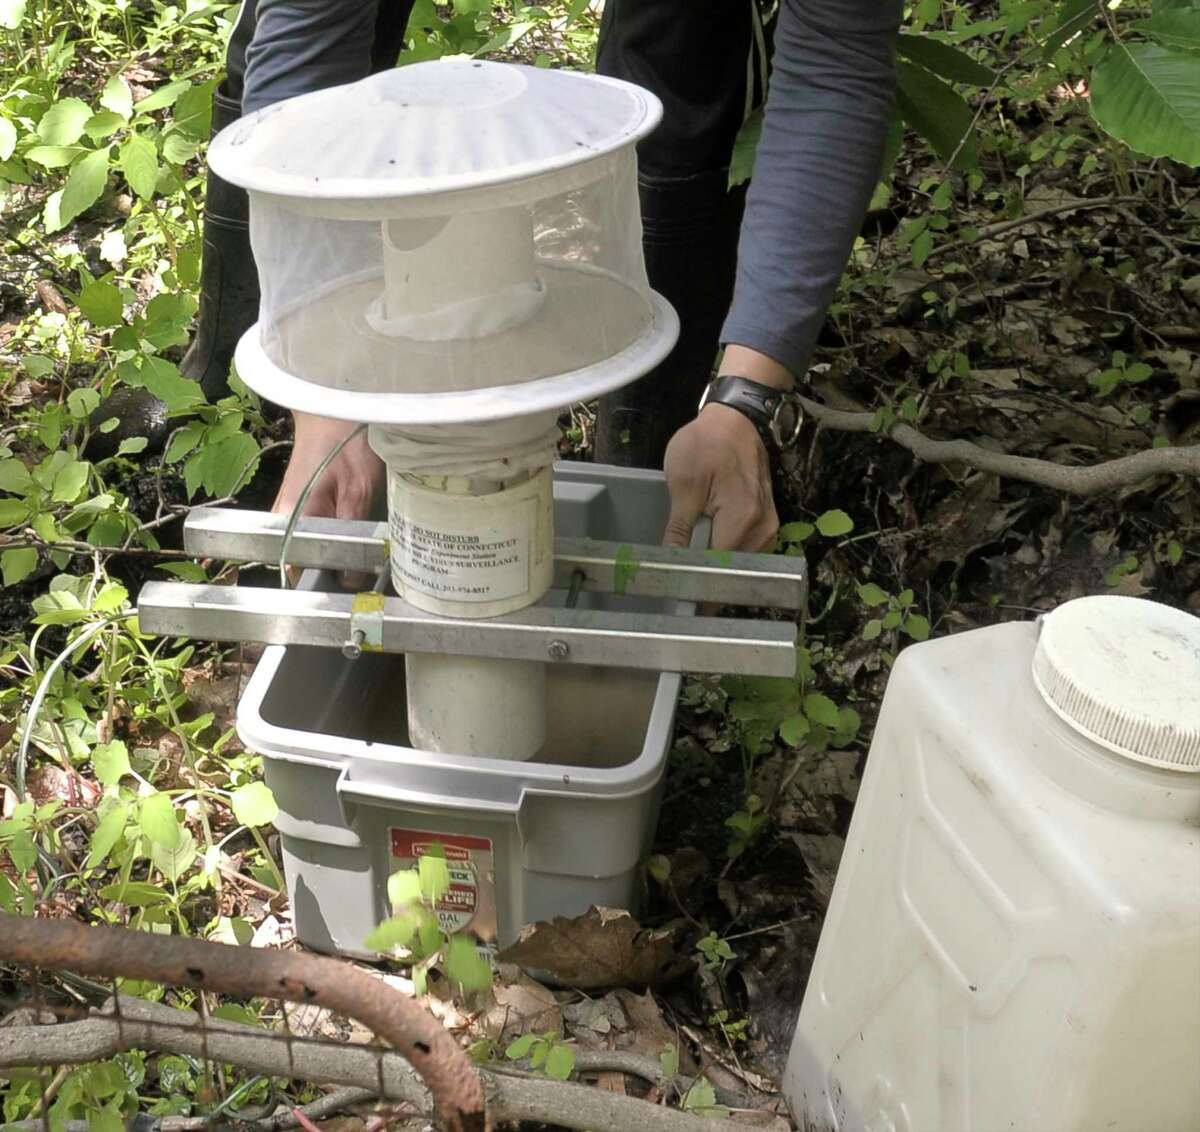 Carlos Franco, a Field Research Assistant with the Connecticut Agriculture Station in New Haven, was at Meckauer Park, in Bethel, Conn, on Wednesday, June 3, 2015 to set mosquito traps to test mosquitoes for west nile virus and other diseases. Franco is setting up a gravid trap, one of two types he put in the park.